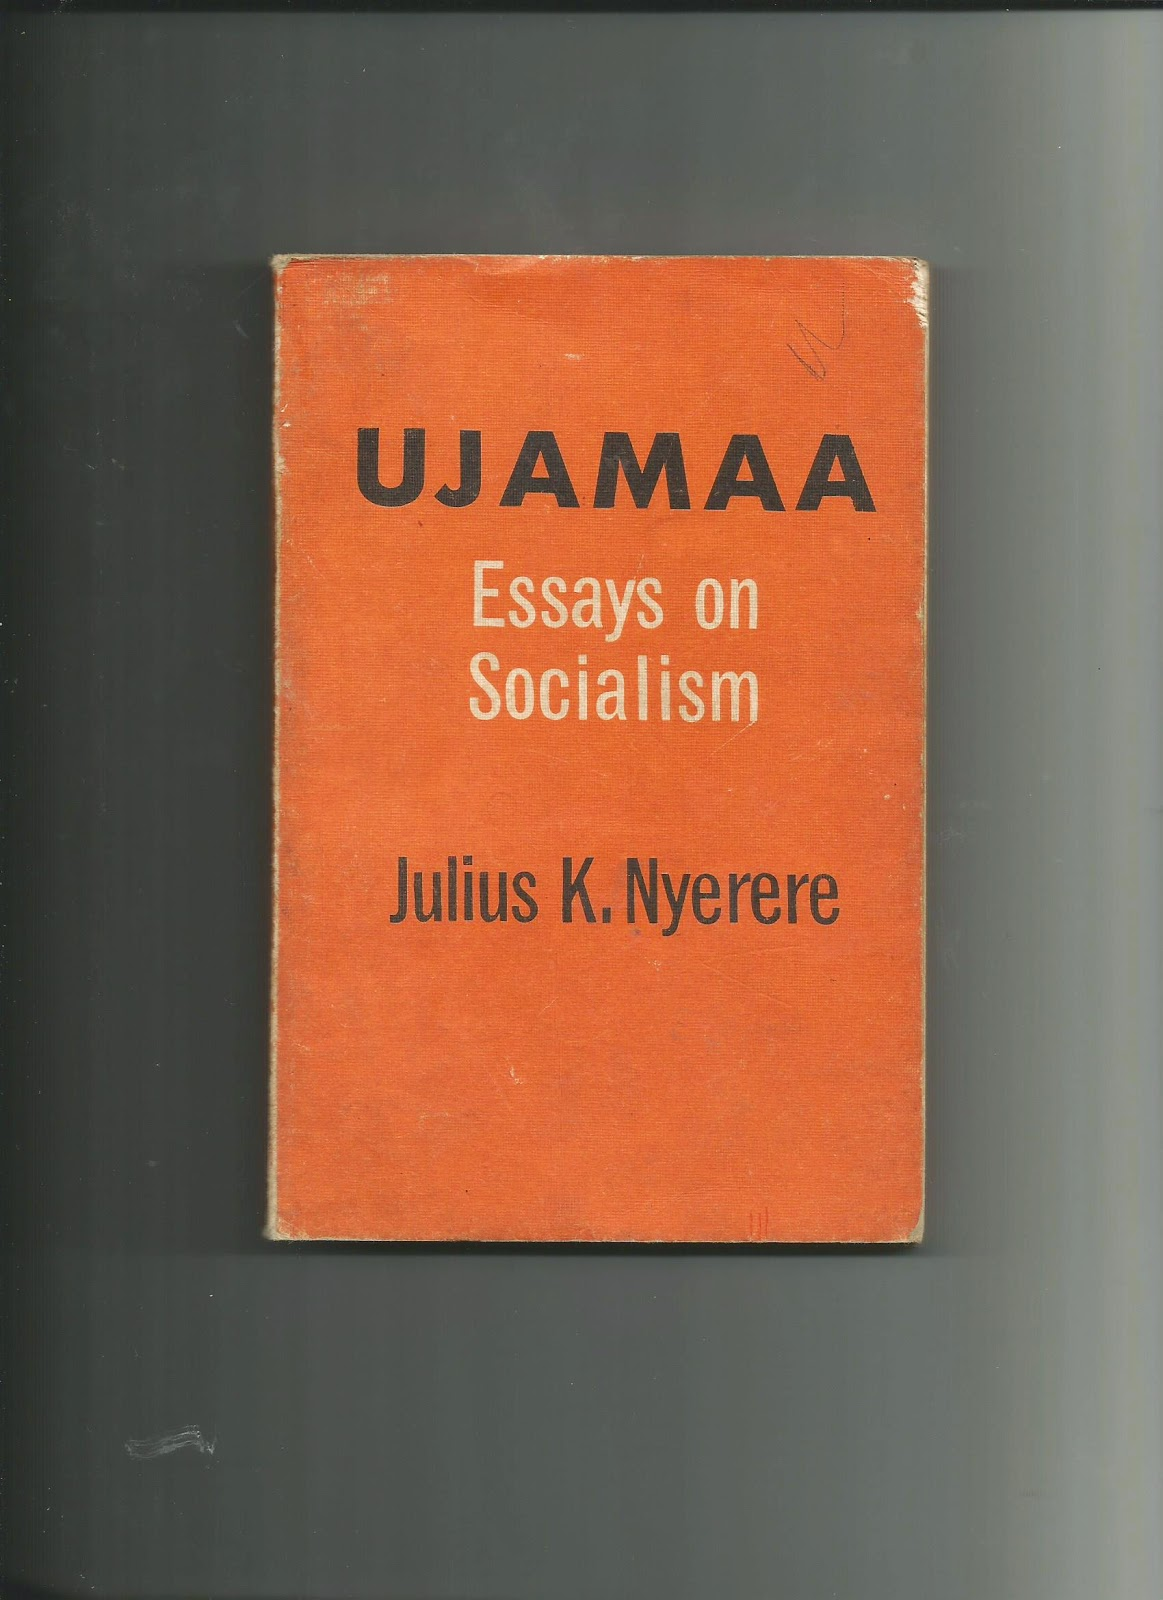 julius nyerere ujamaa essays on socialism Julius nyerere ujamaa essays on socialism pdf viewer, doctoral dissertation writing service, where to buy essay papers.